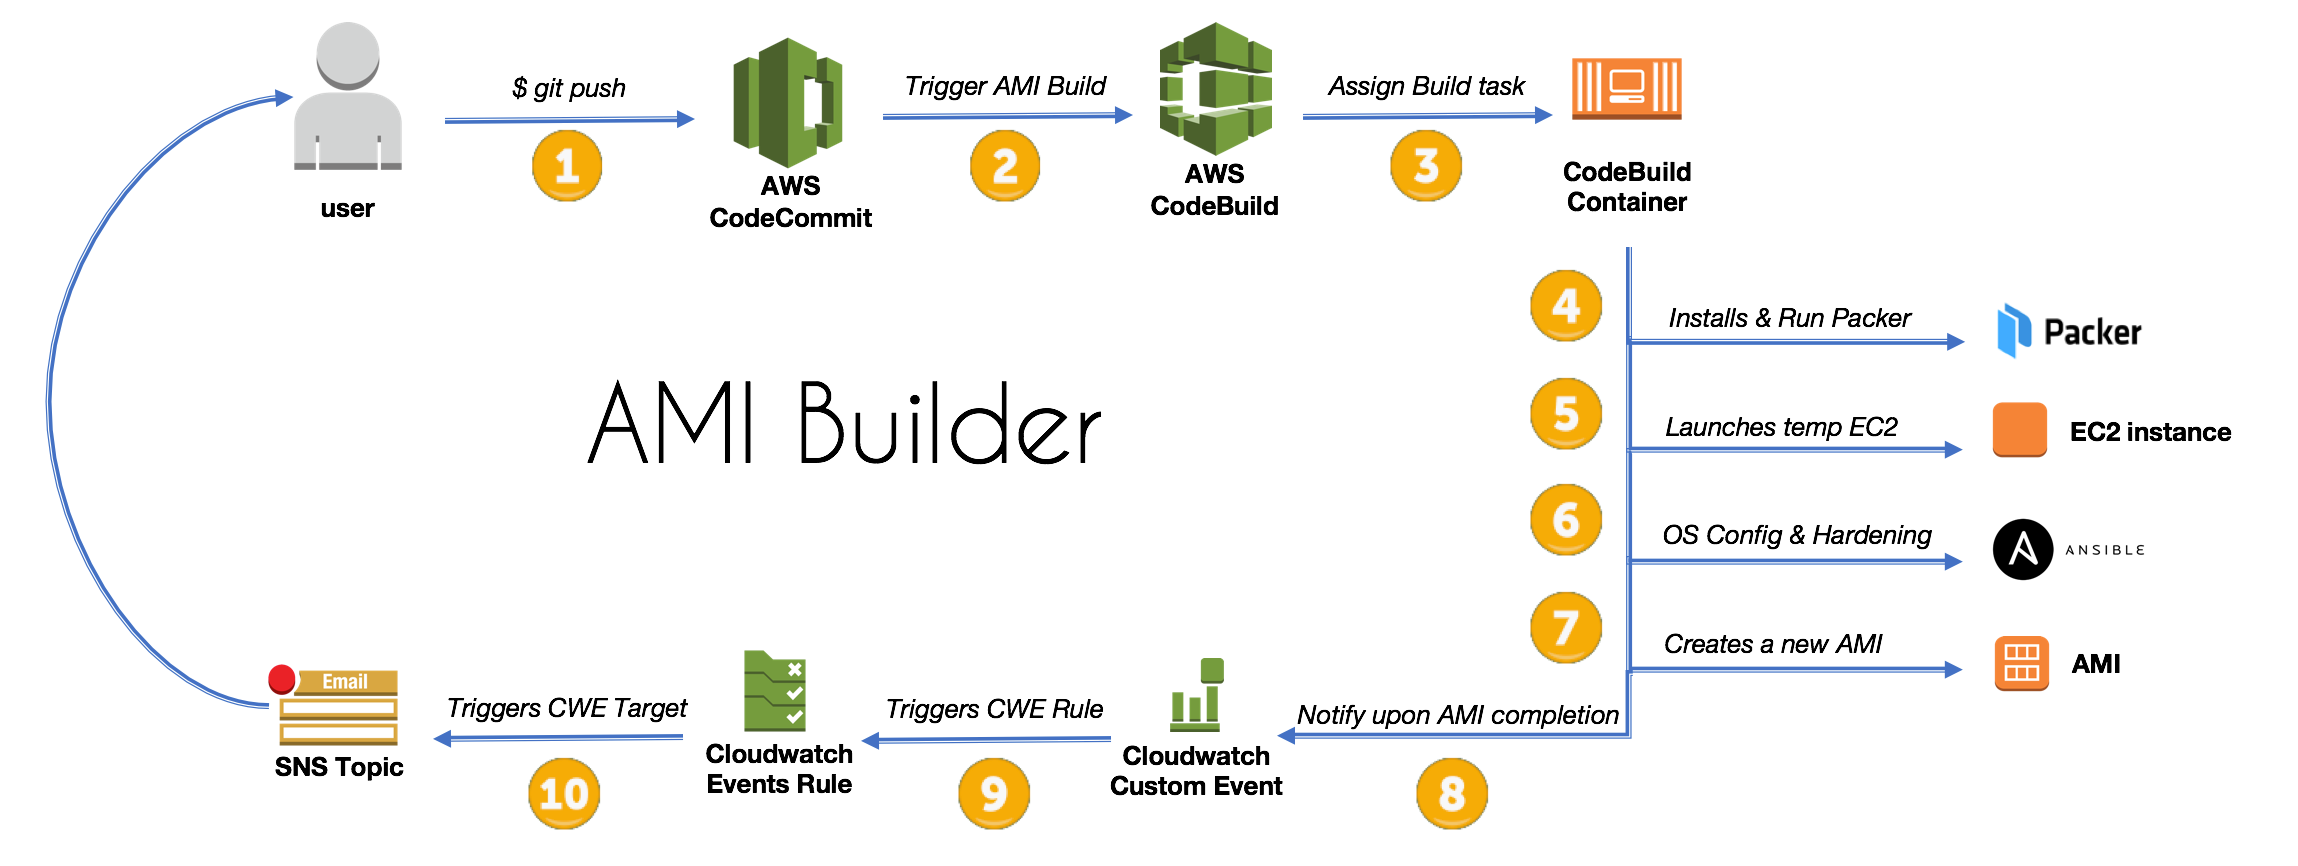 How to Create an AMI Builder with AWS CodeBuild and HashiCorp Packer